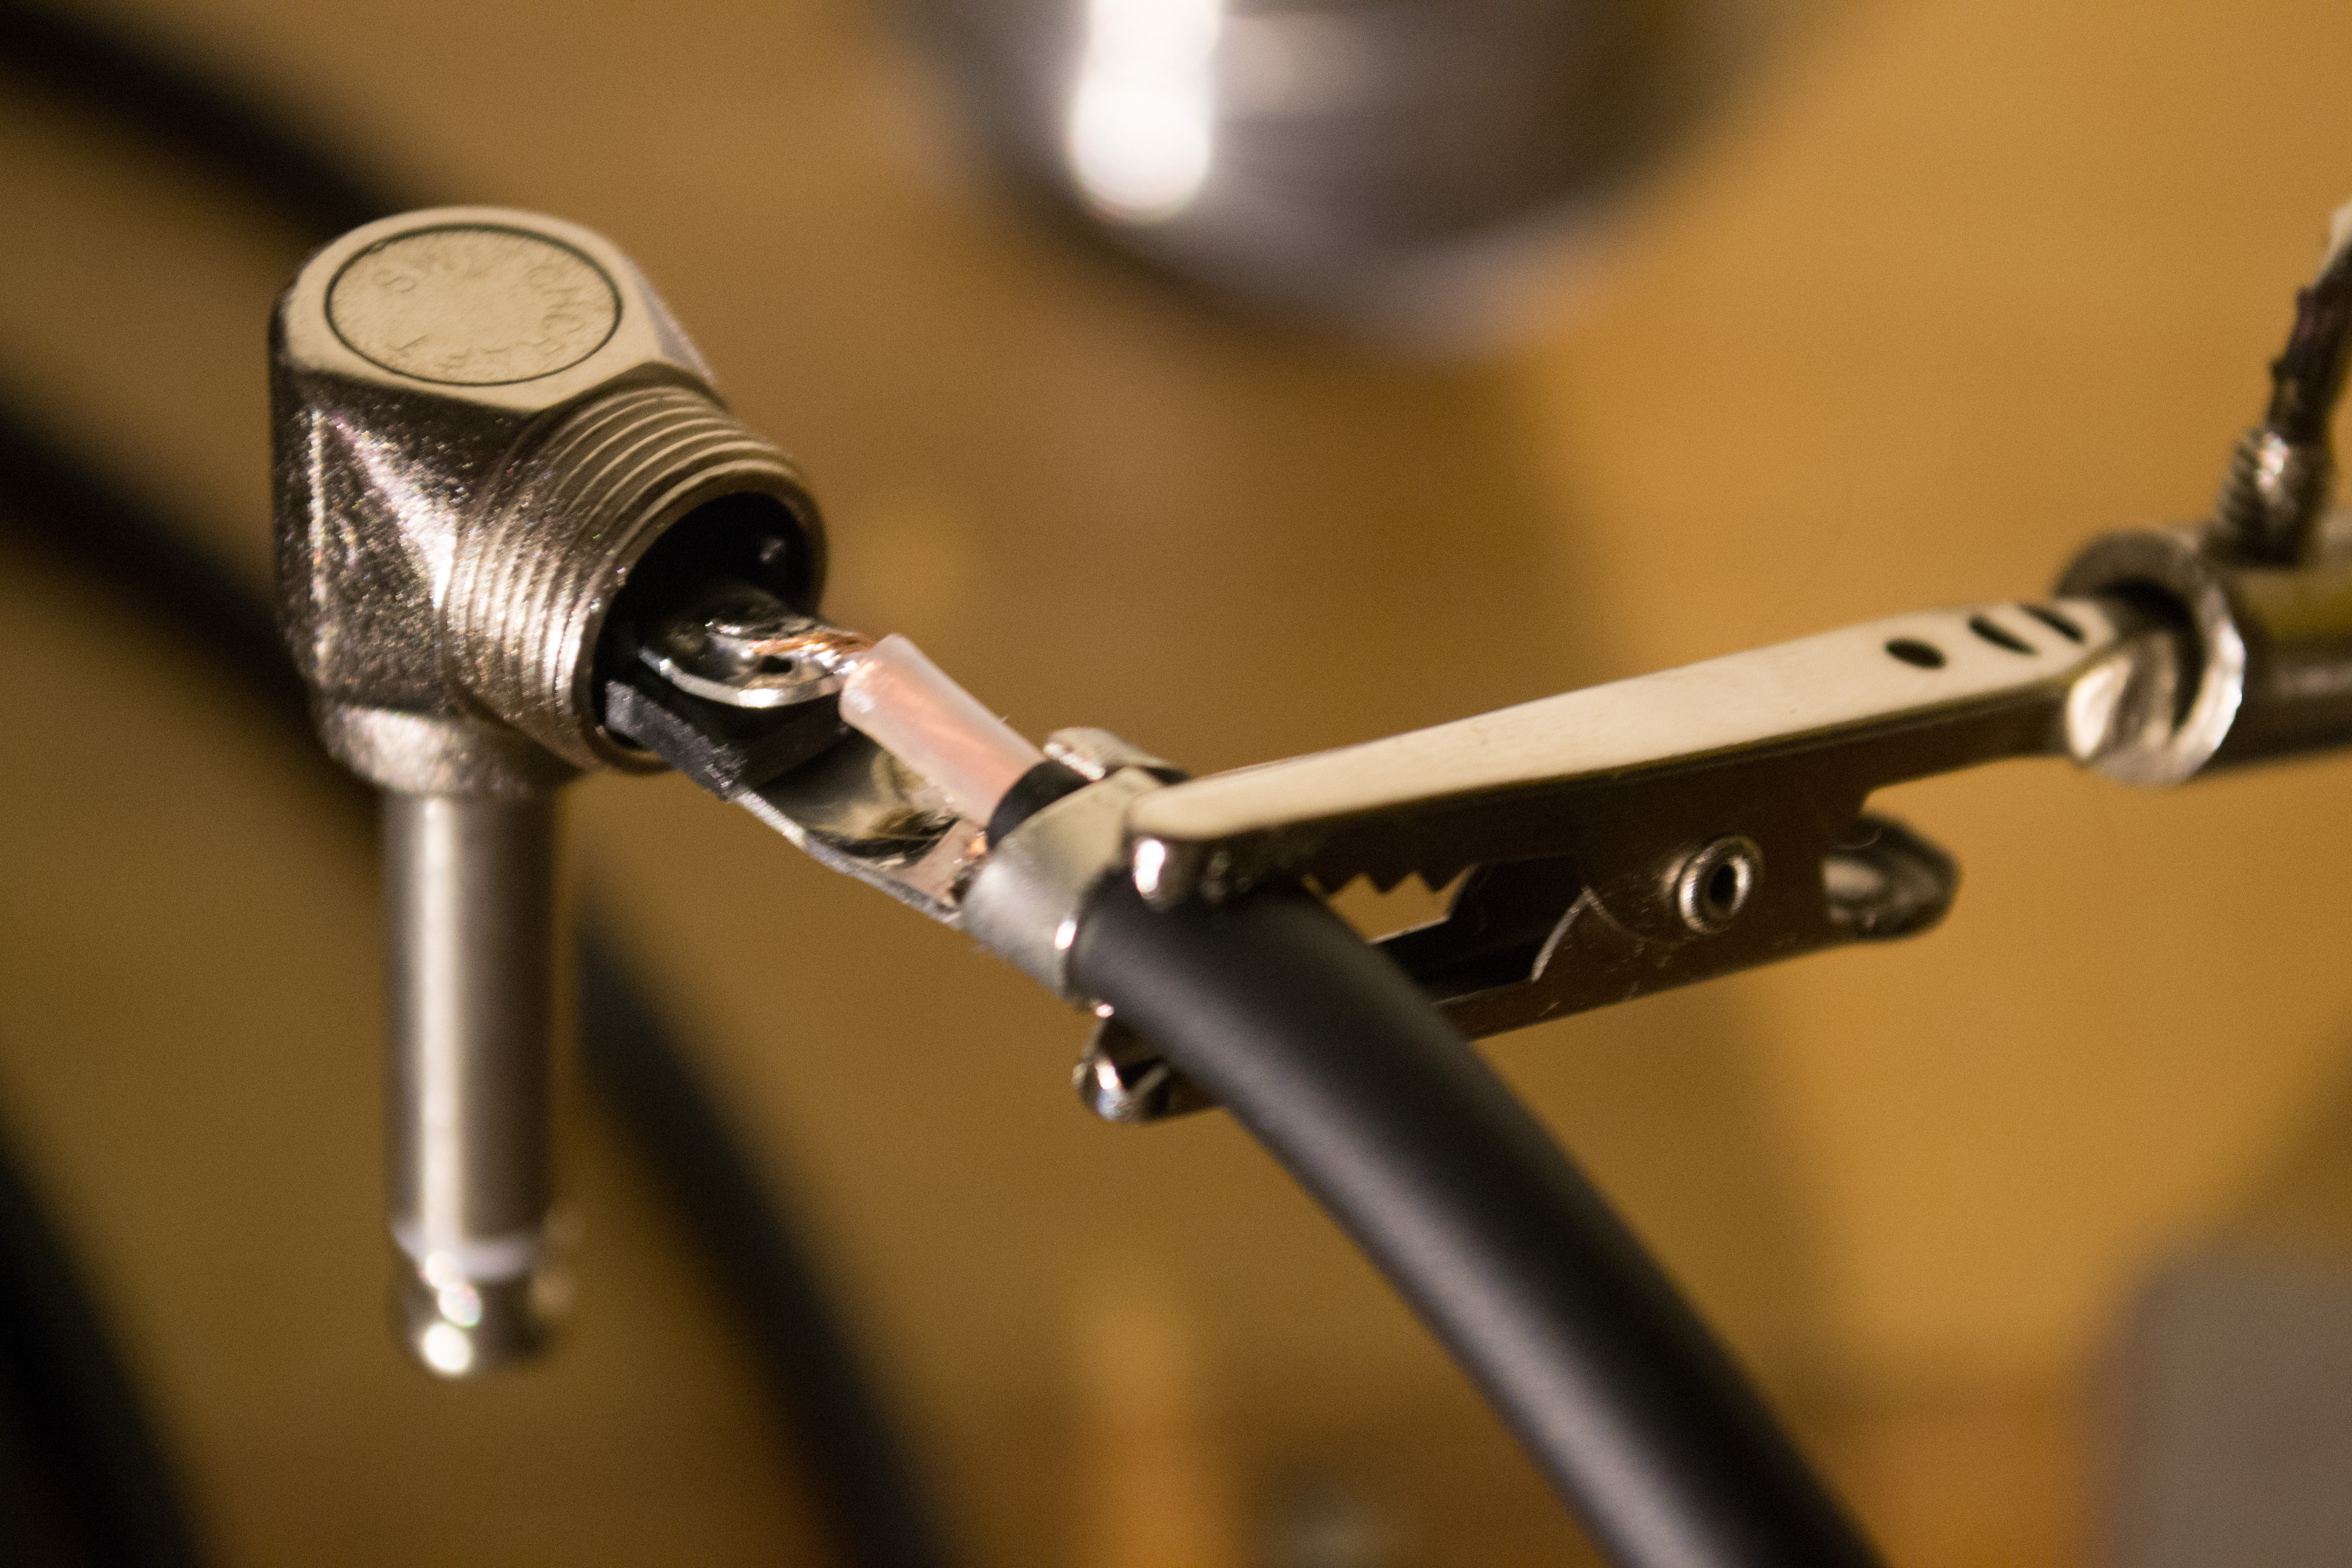 Roll your own patch cables